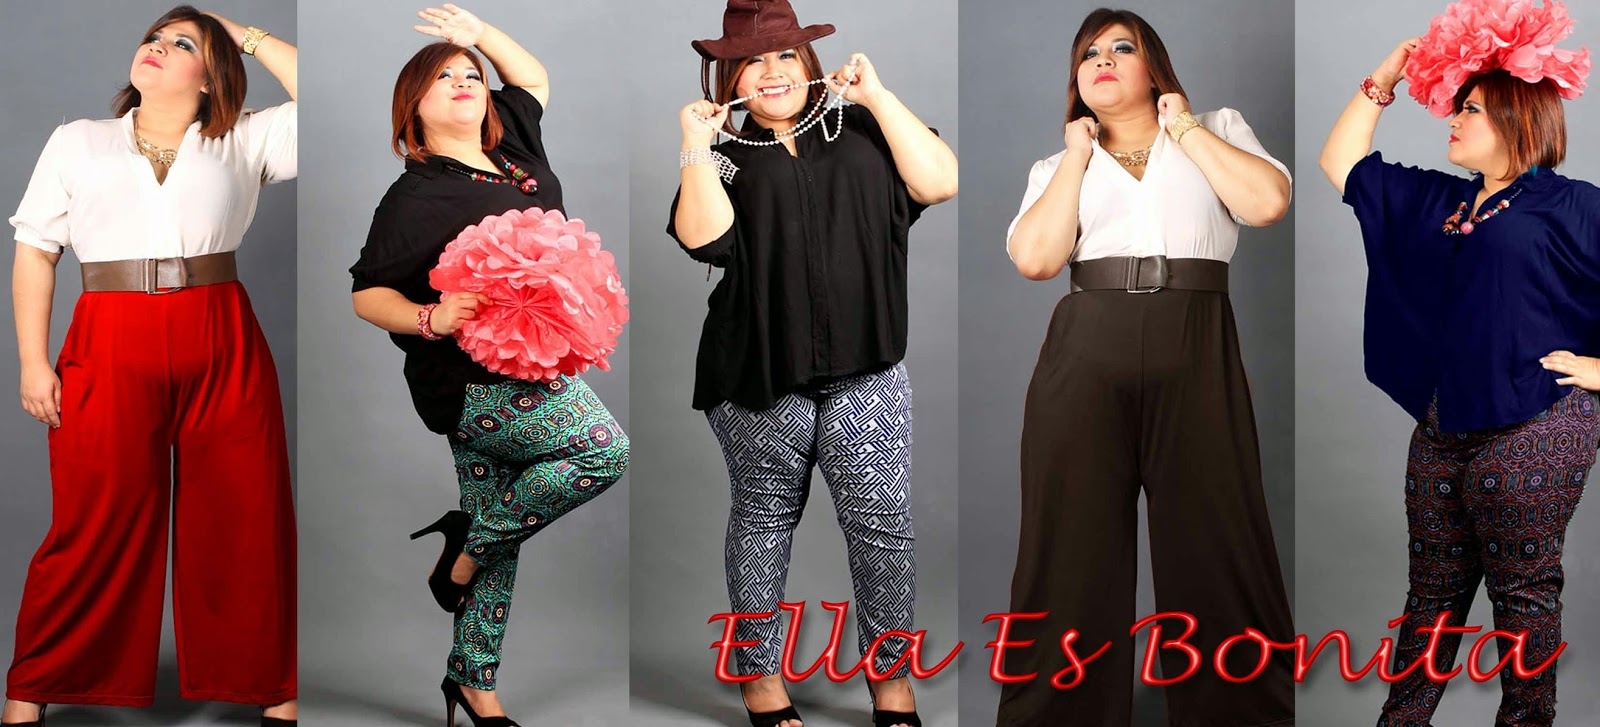 Ella clothing store